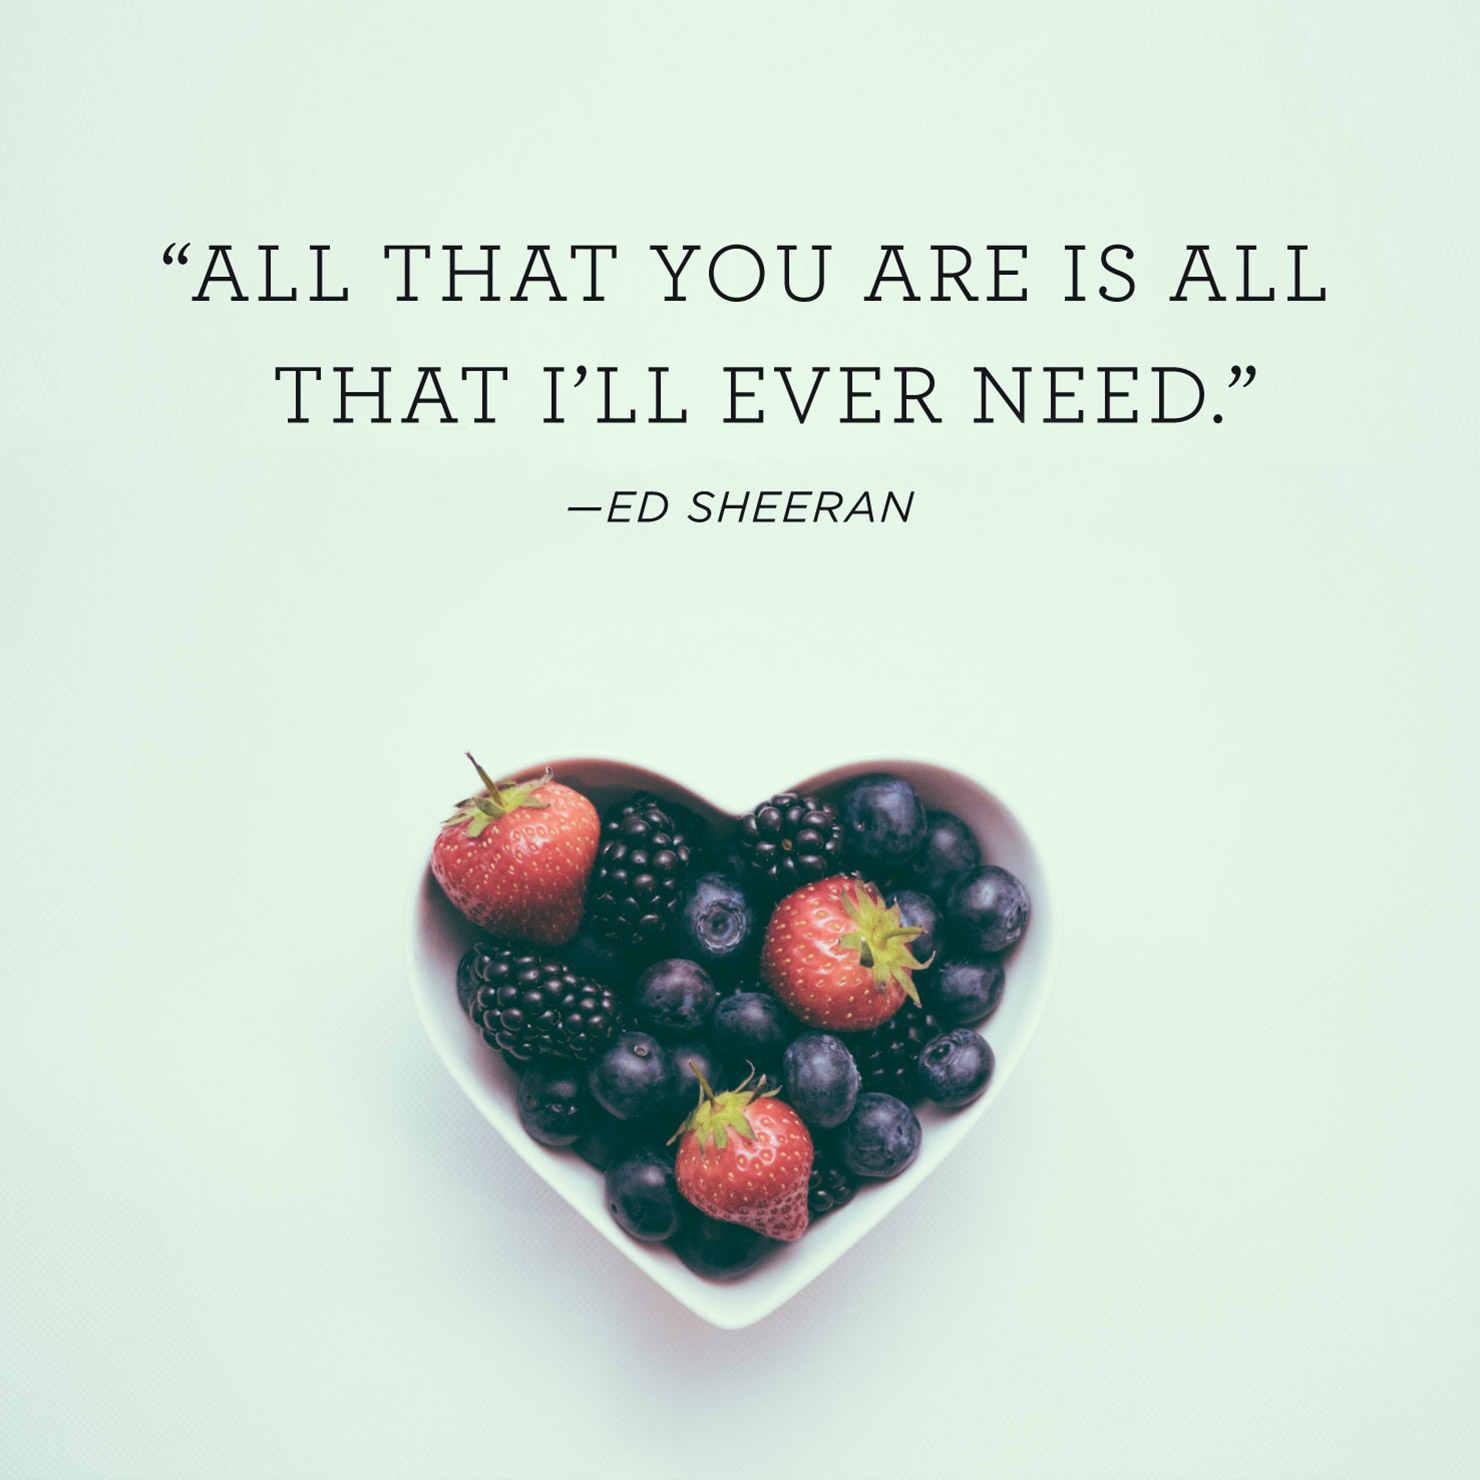 Quote above background image: All that you are is all that I'll ever need. - Ed Sheeran